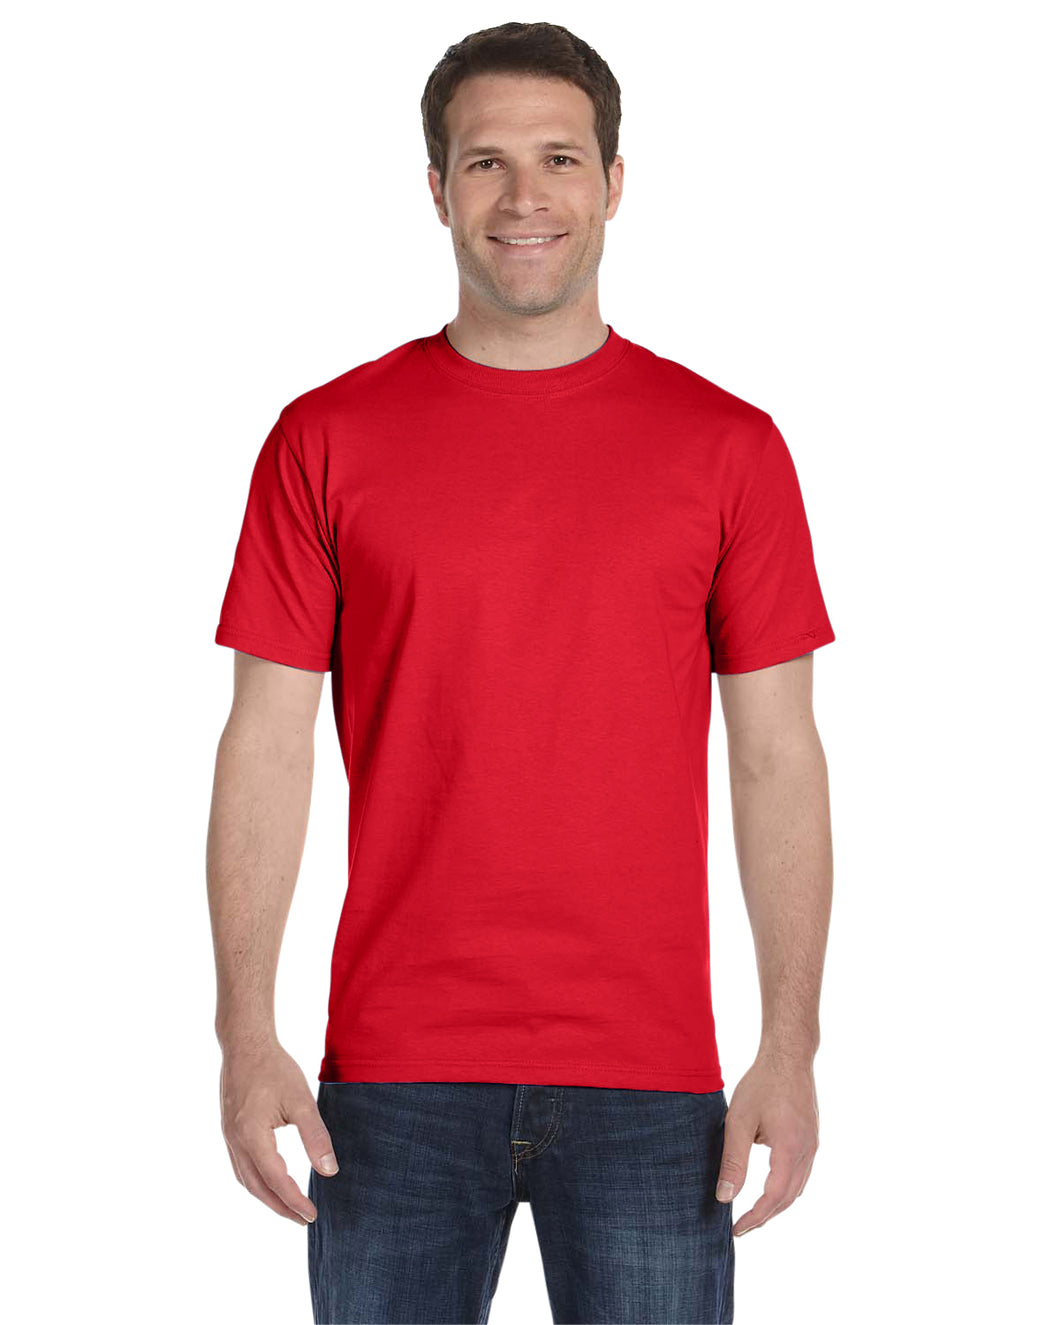 Hanes Beefy-T Adult T-Shirt